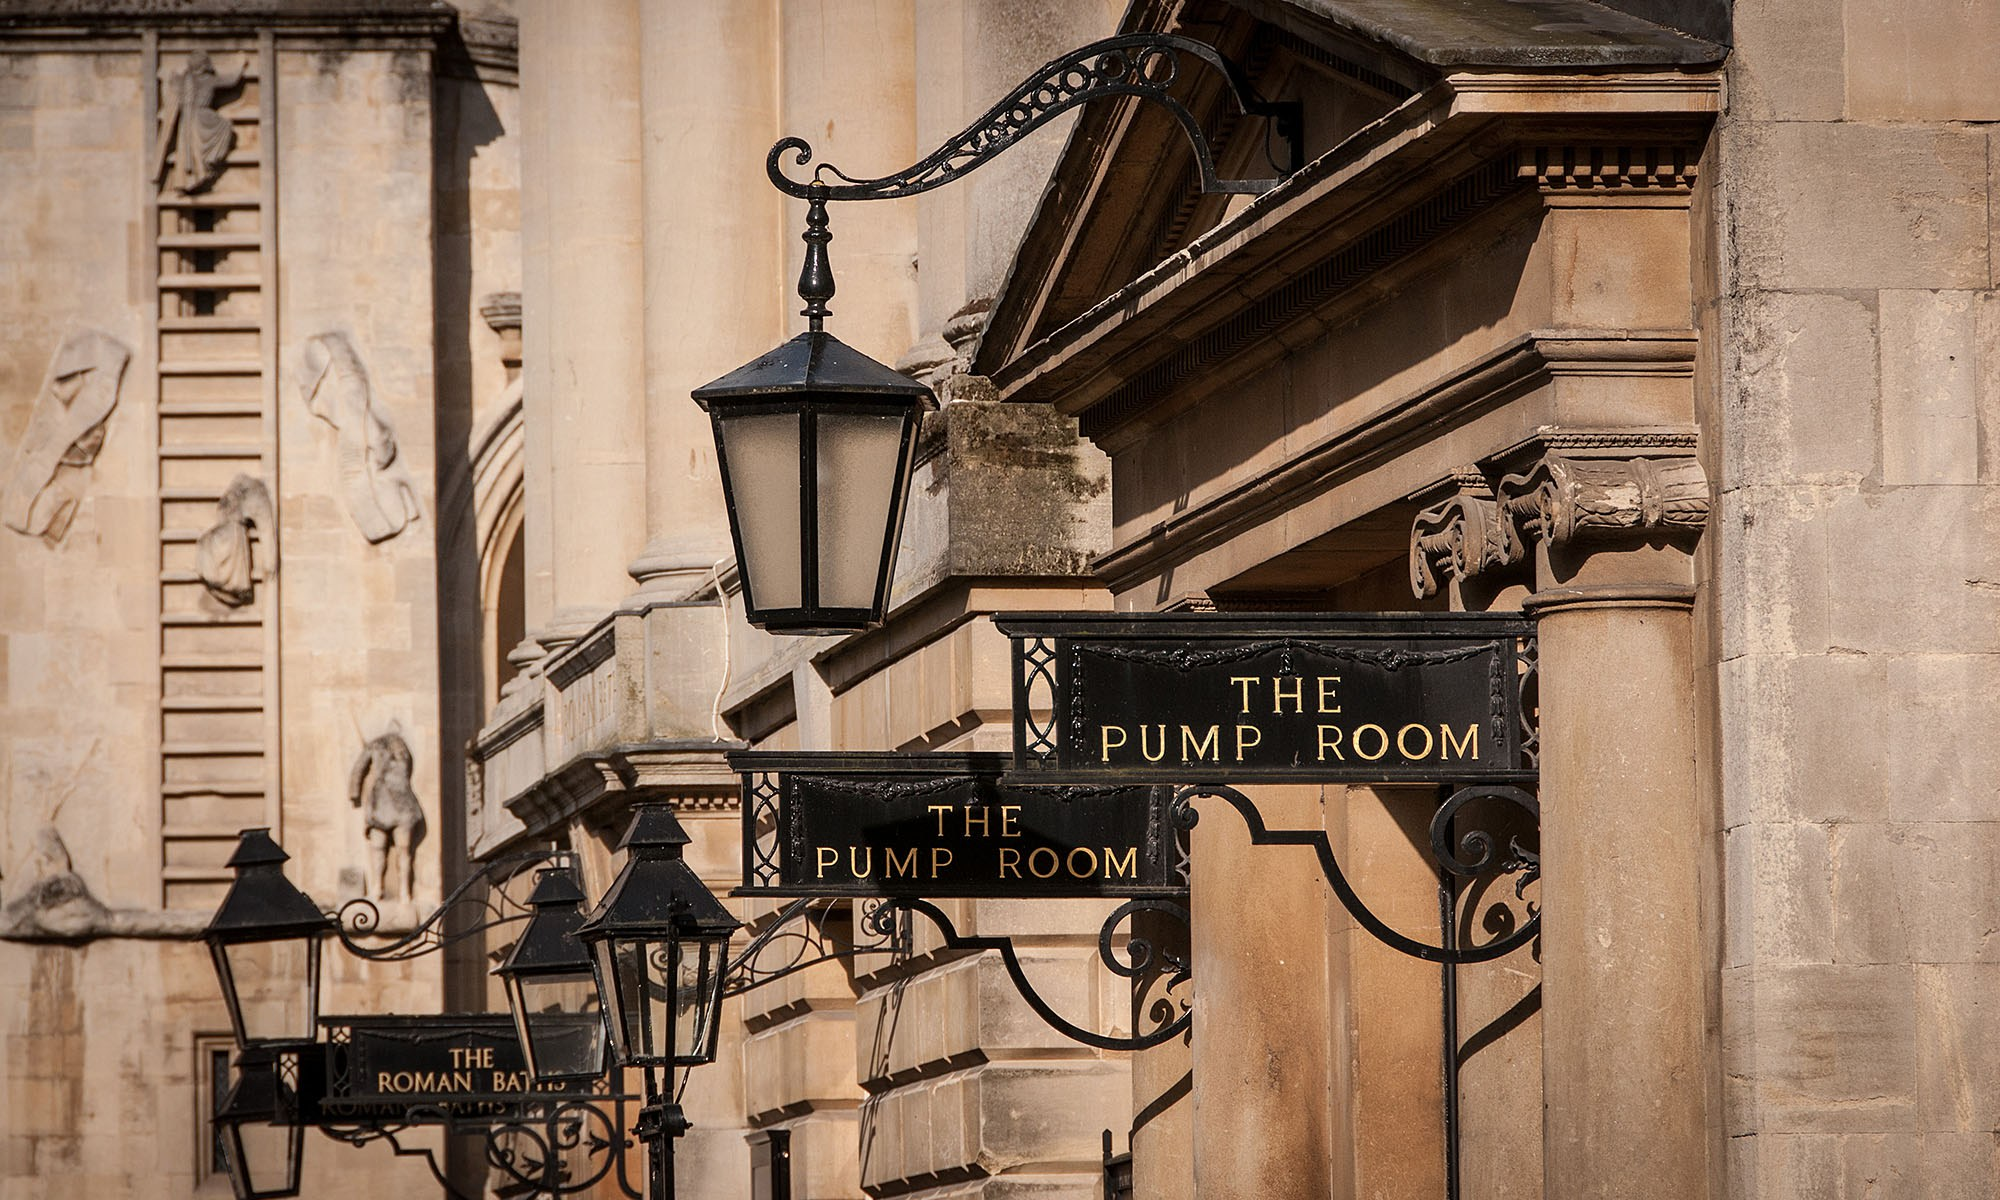 The Pump Rooms and Roman Baths Entrance